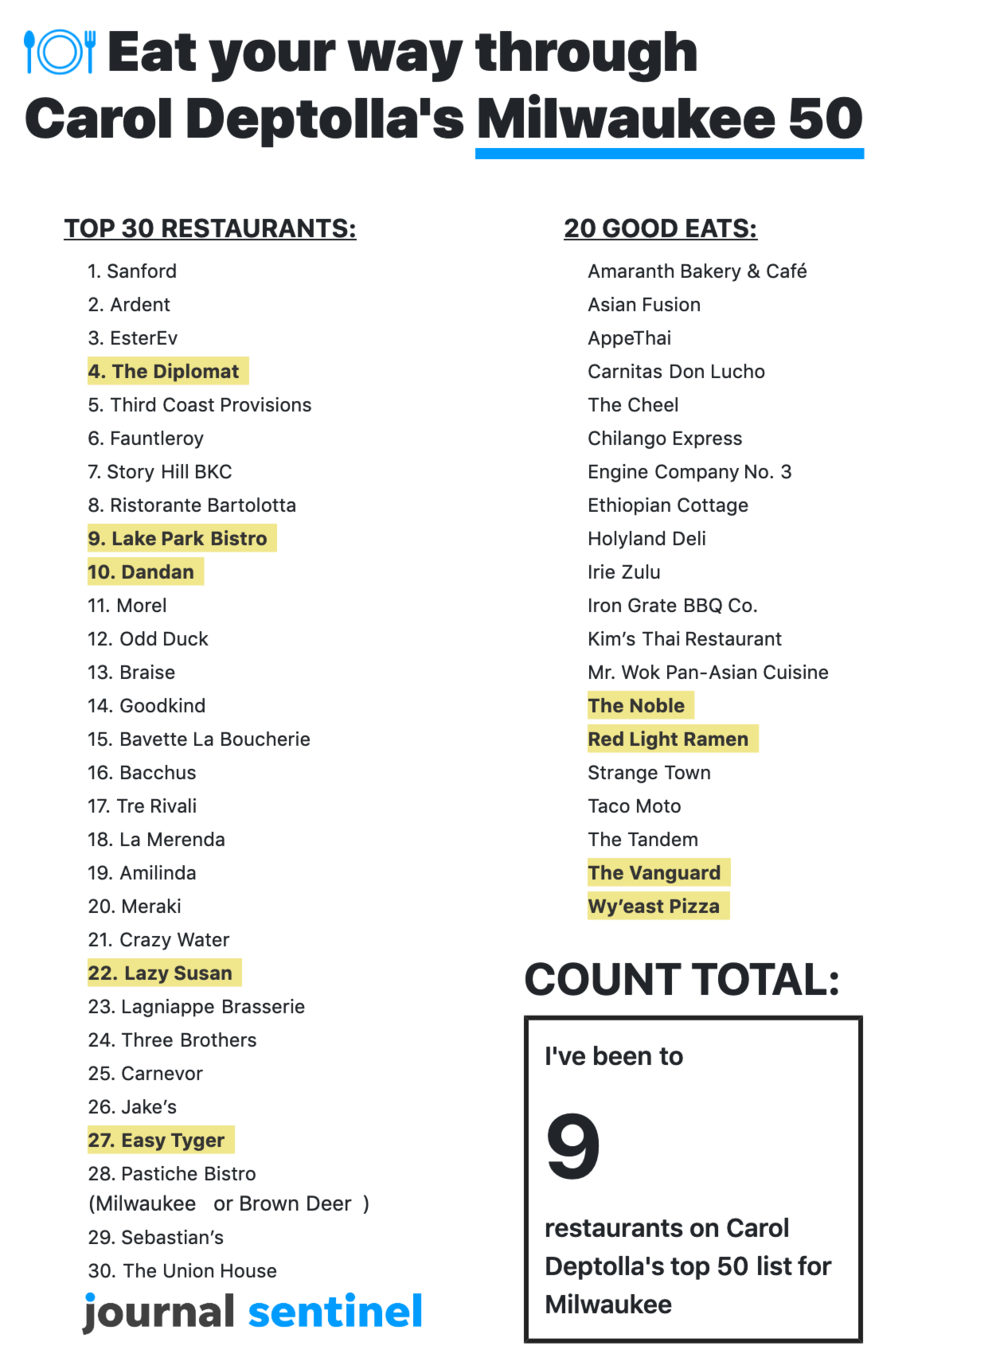 Milwaukee 50 social checklist - Share how many of Milwaukee's top restaurants you've eaten at.ROLE: Development